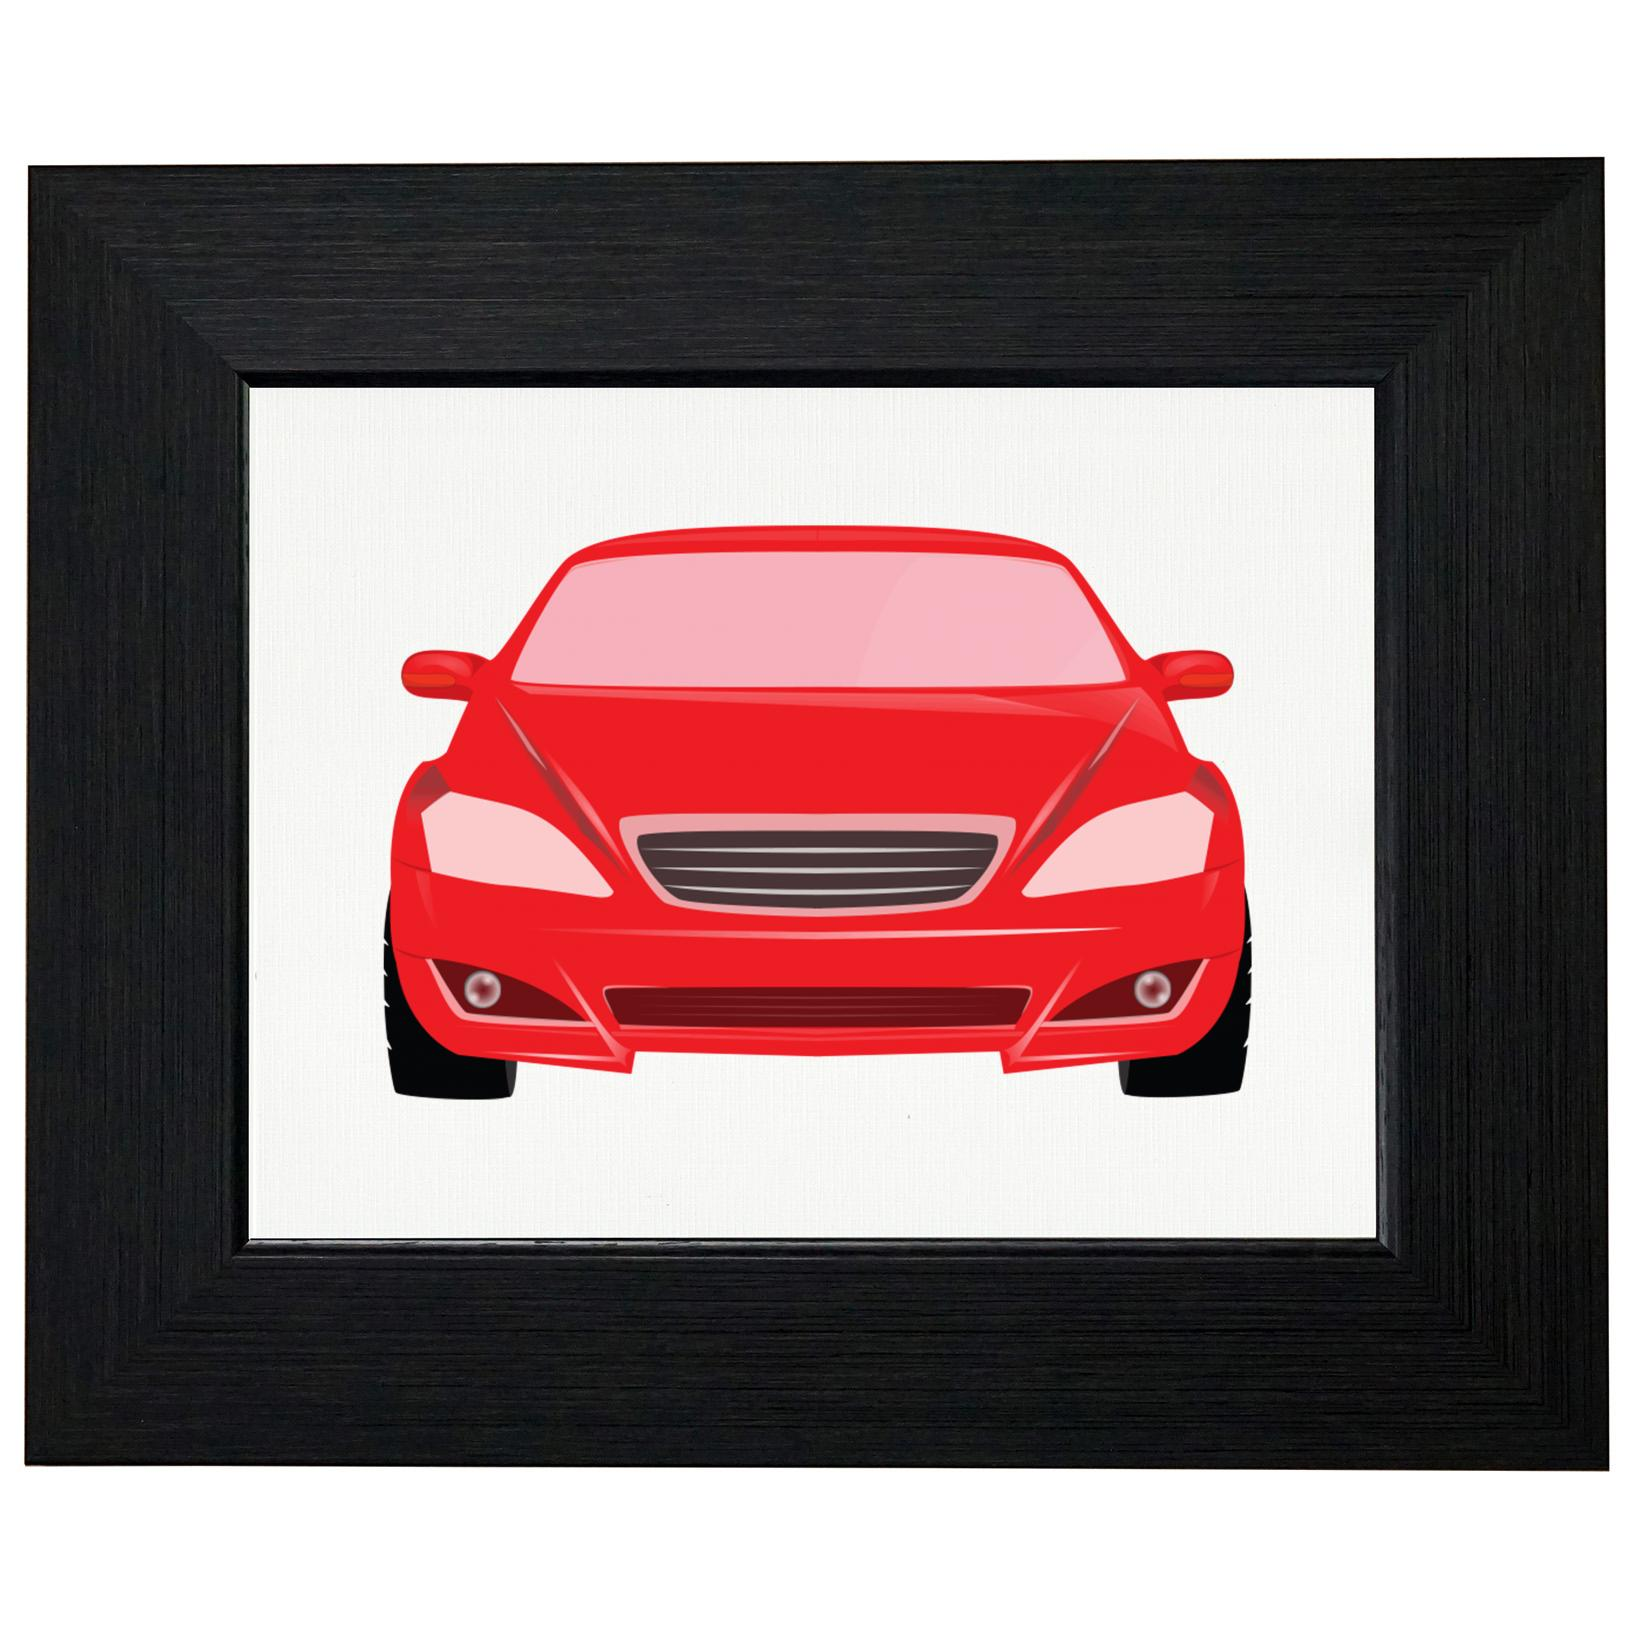 Red Race Car Unique Front View Silhouette Graphic Framed Print Poster Wall or Desk Mount Options